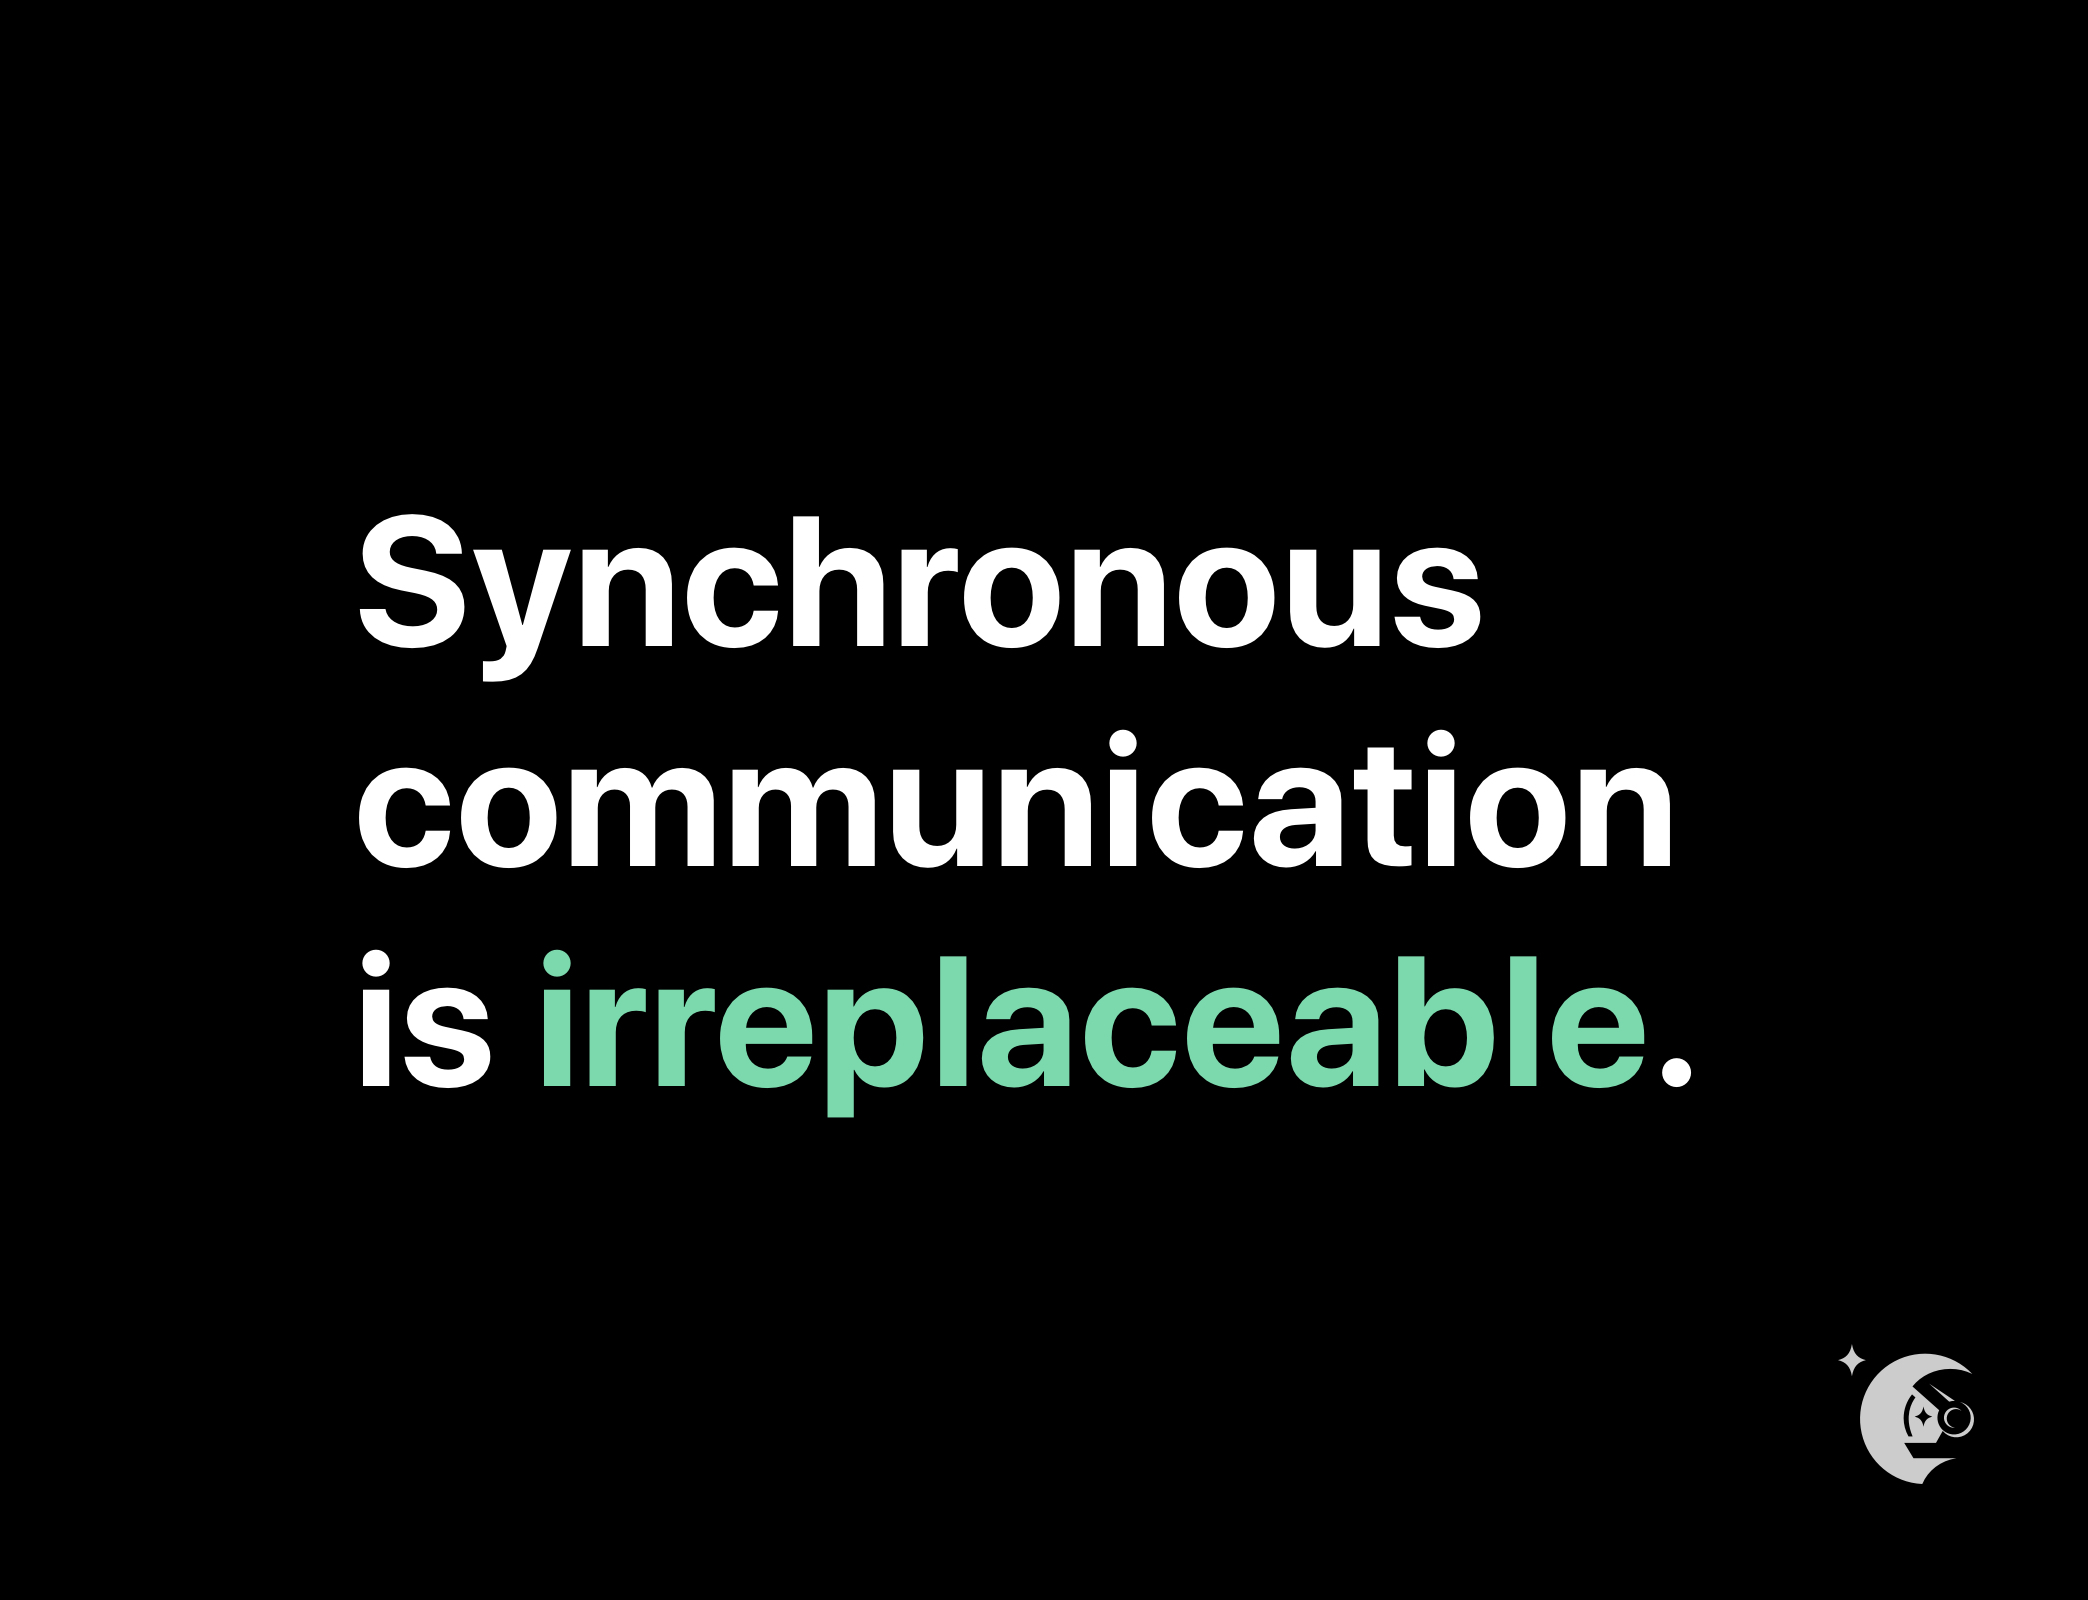 synchronous communication is irreplaceable